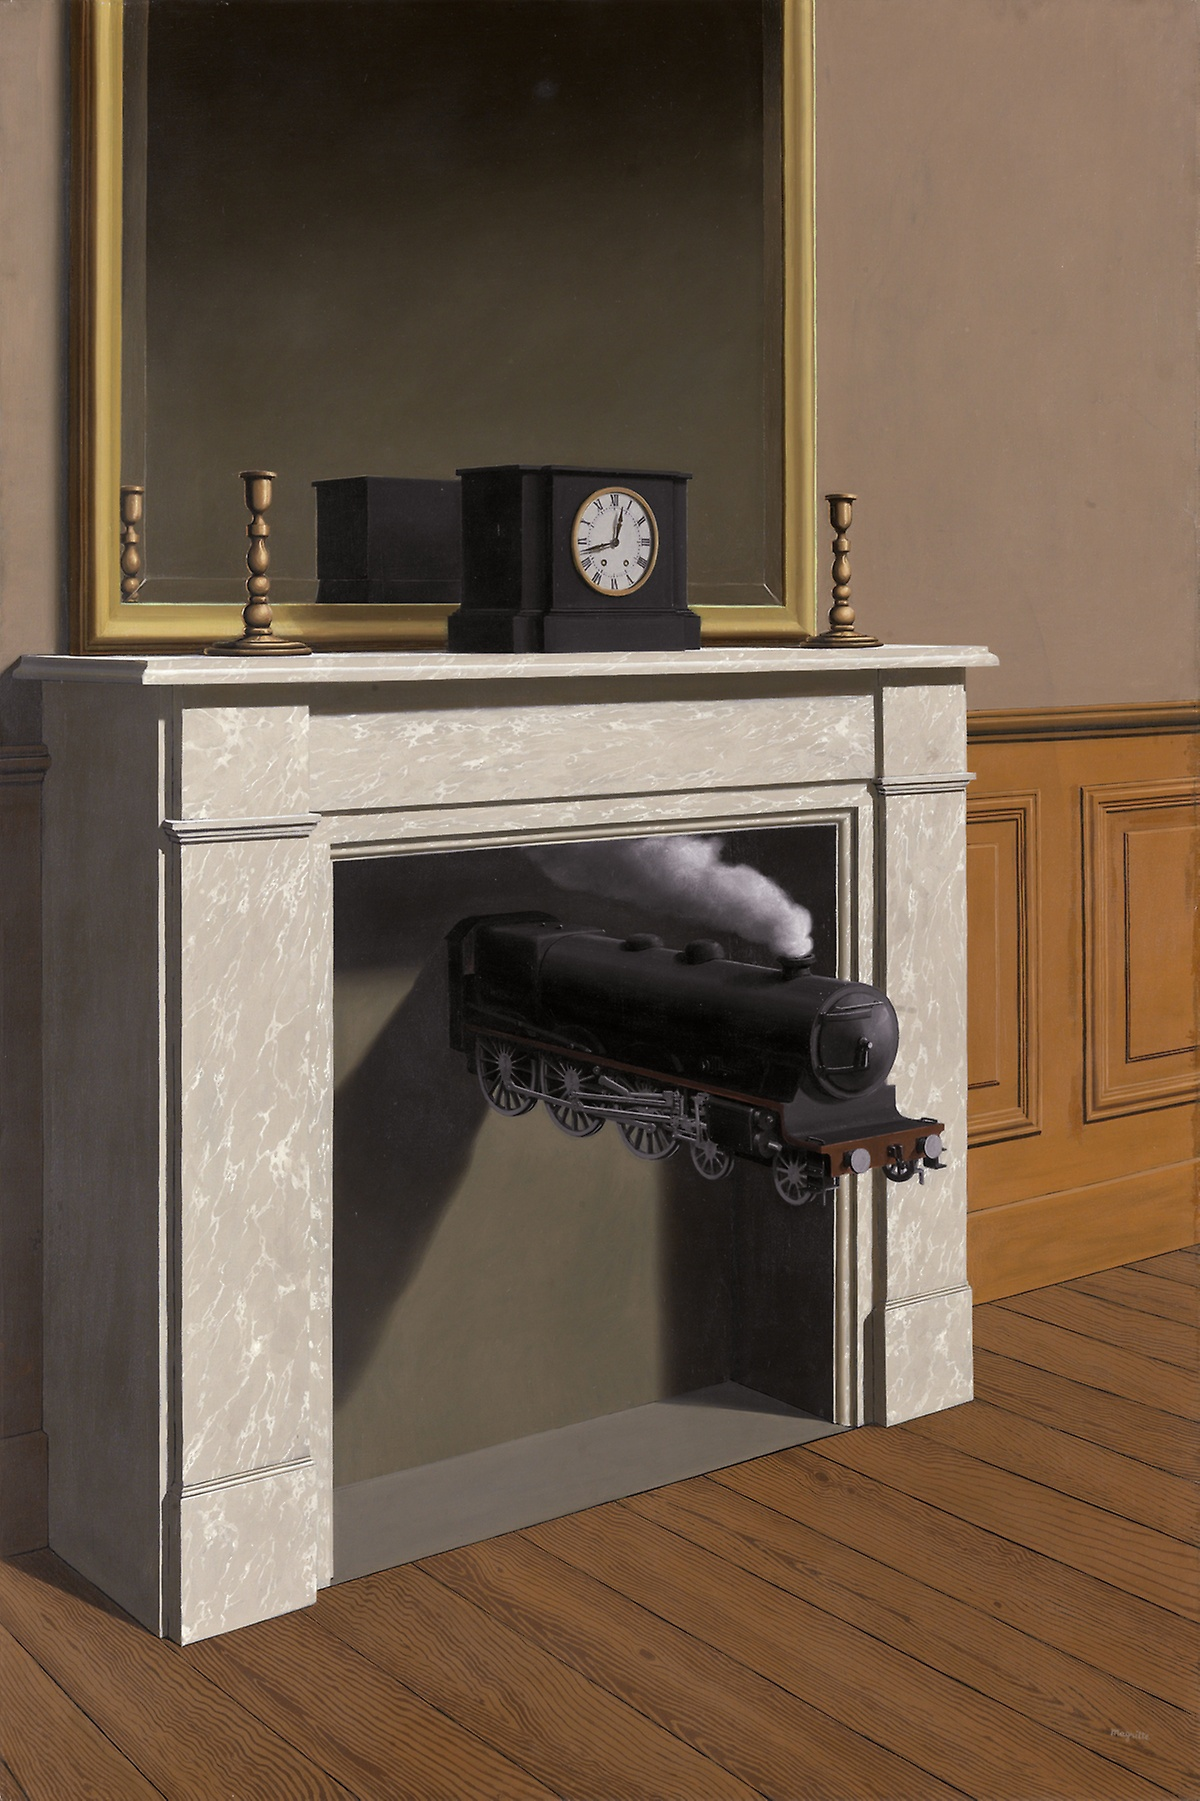 René Magritte, Time Transfixed, 1938, oil on canvas, 57 7/8 x 38 7/8 inches (Art Institute of Chicago)